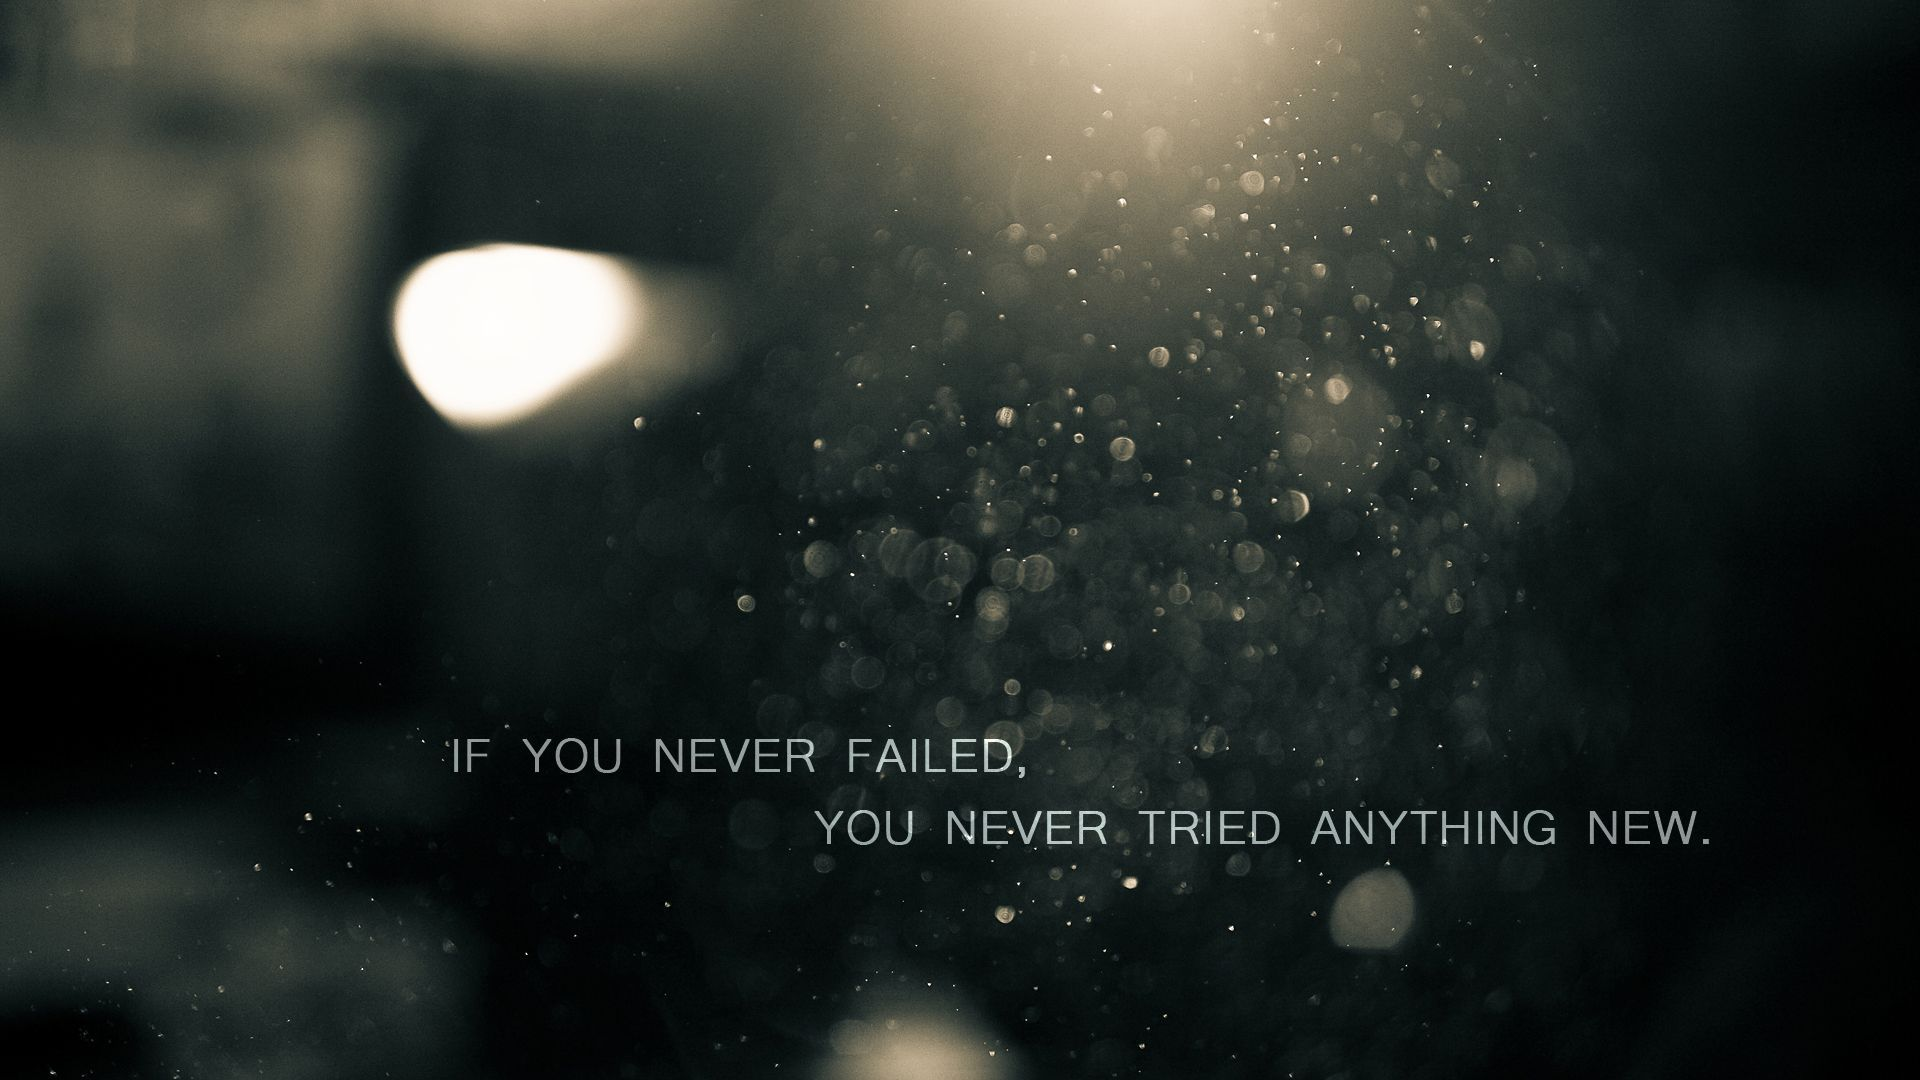 Cool 63 Hd Motivation Wallpaper For Pc Laptops Failed Quote Hd Quotes Wallpaper Quotes